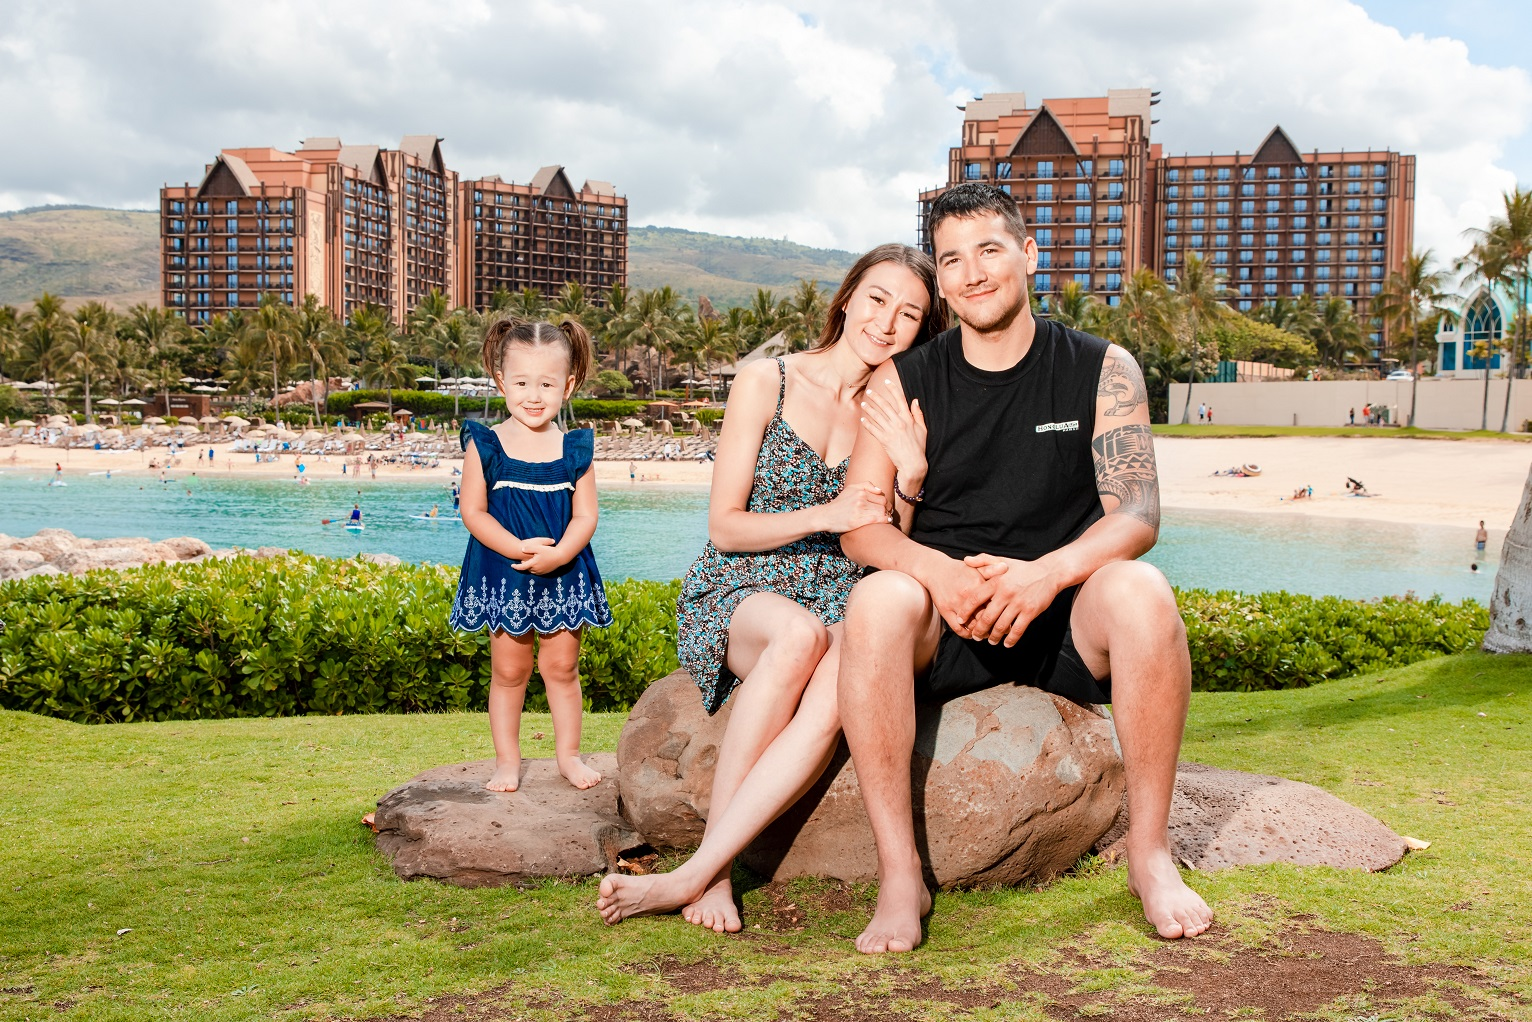 Family Portraits at Disney Aulani in Ko Olina, Oahu Hawaii